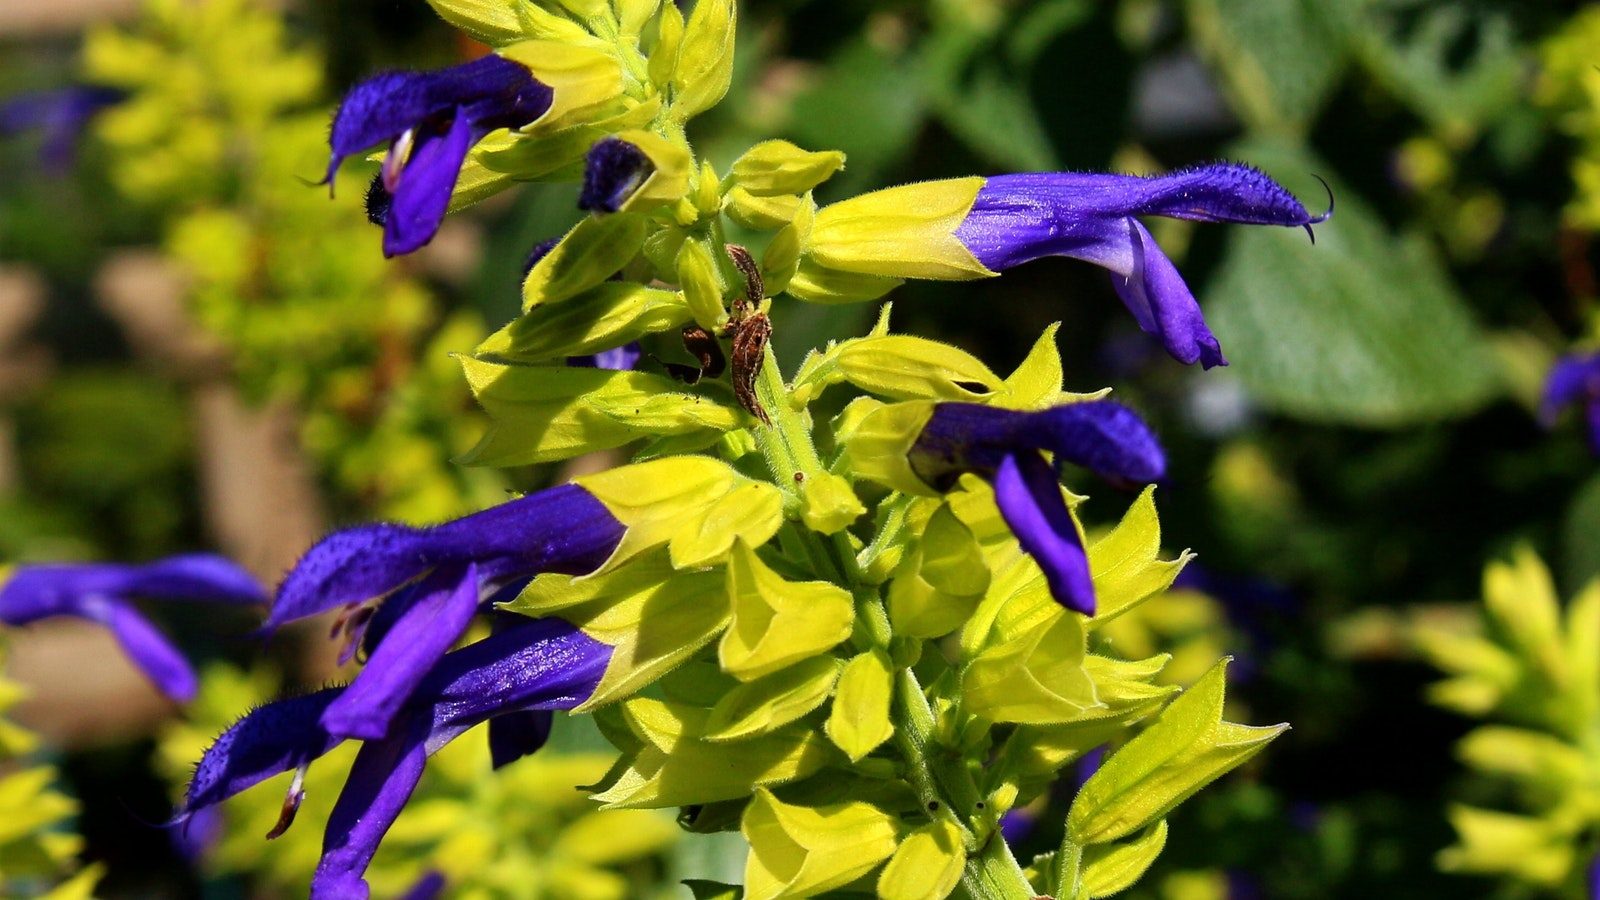 Tindale Garden salvia limelight bursting with complimentary color